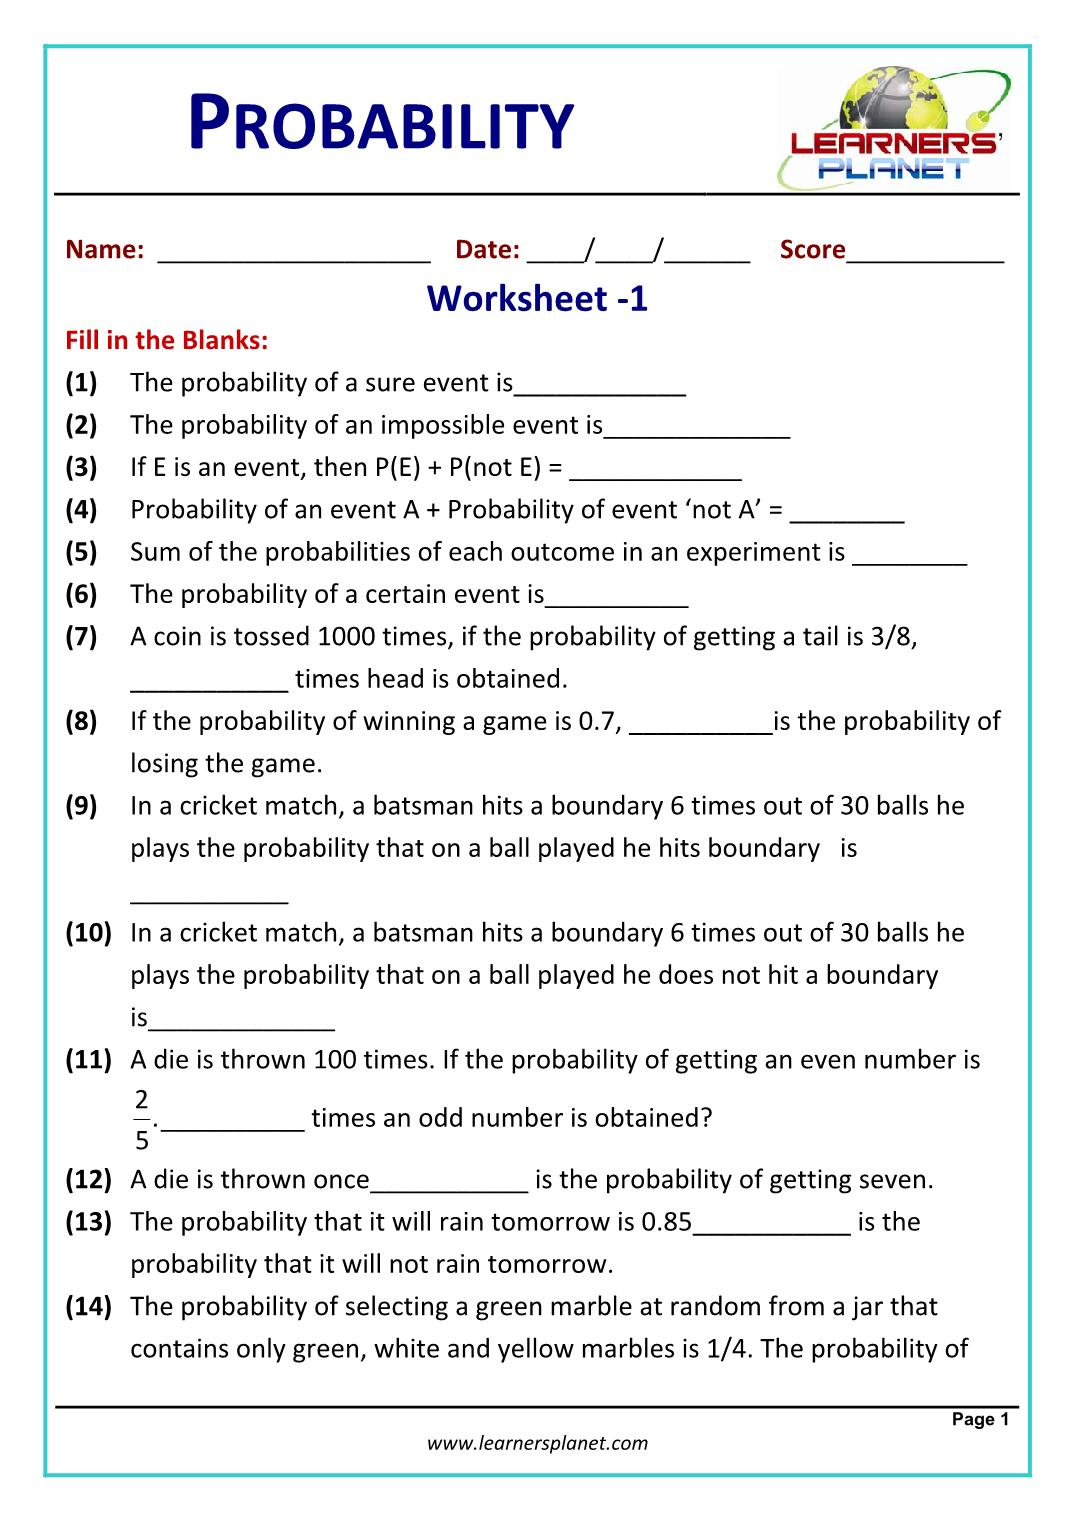 hight resolution of Math Problems For 9th Graders Worksheets - Antihrapcom on Worksheets Ideas  314